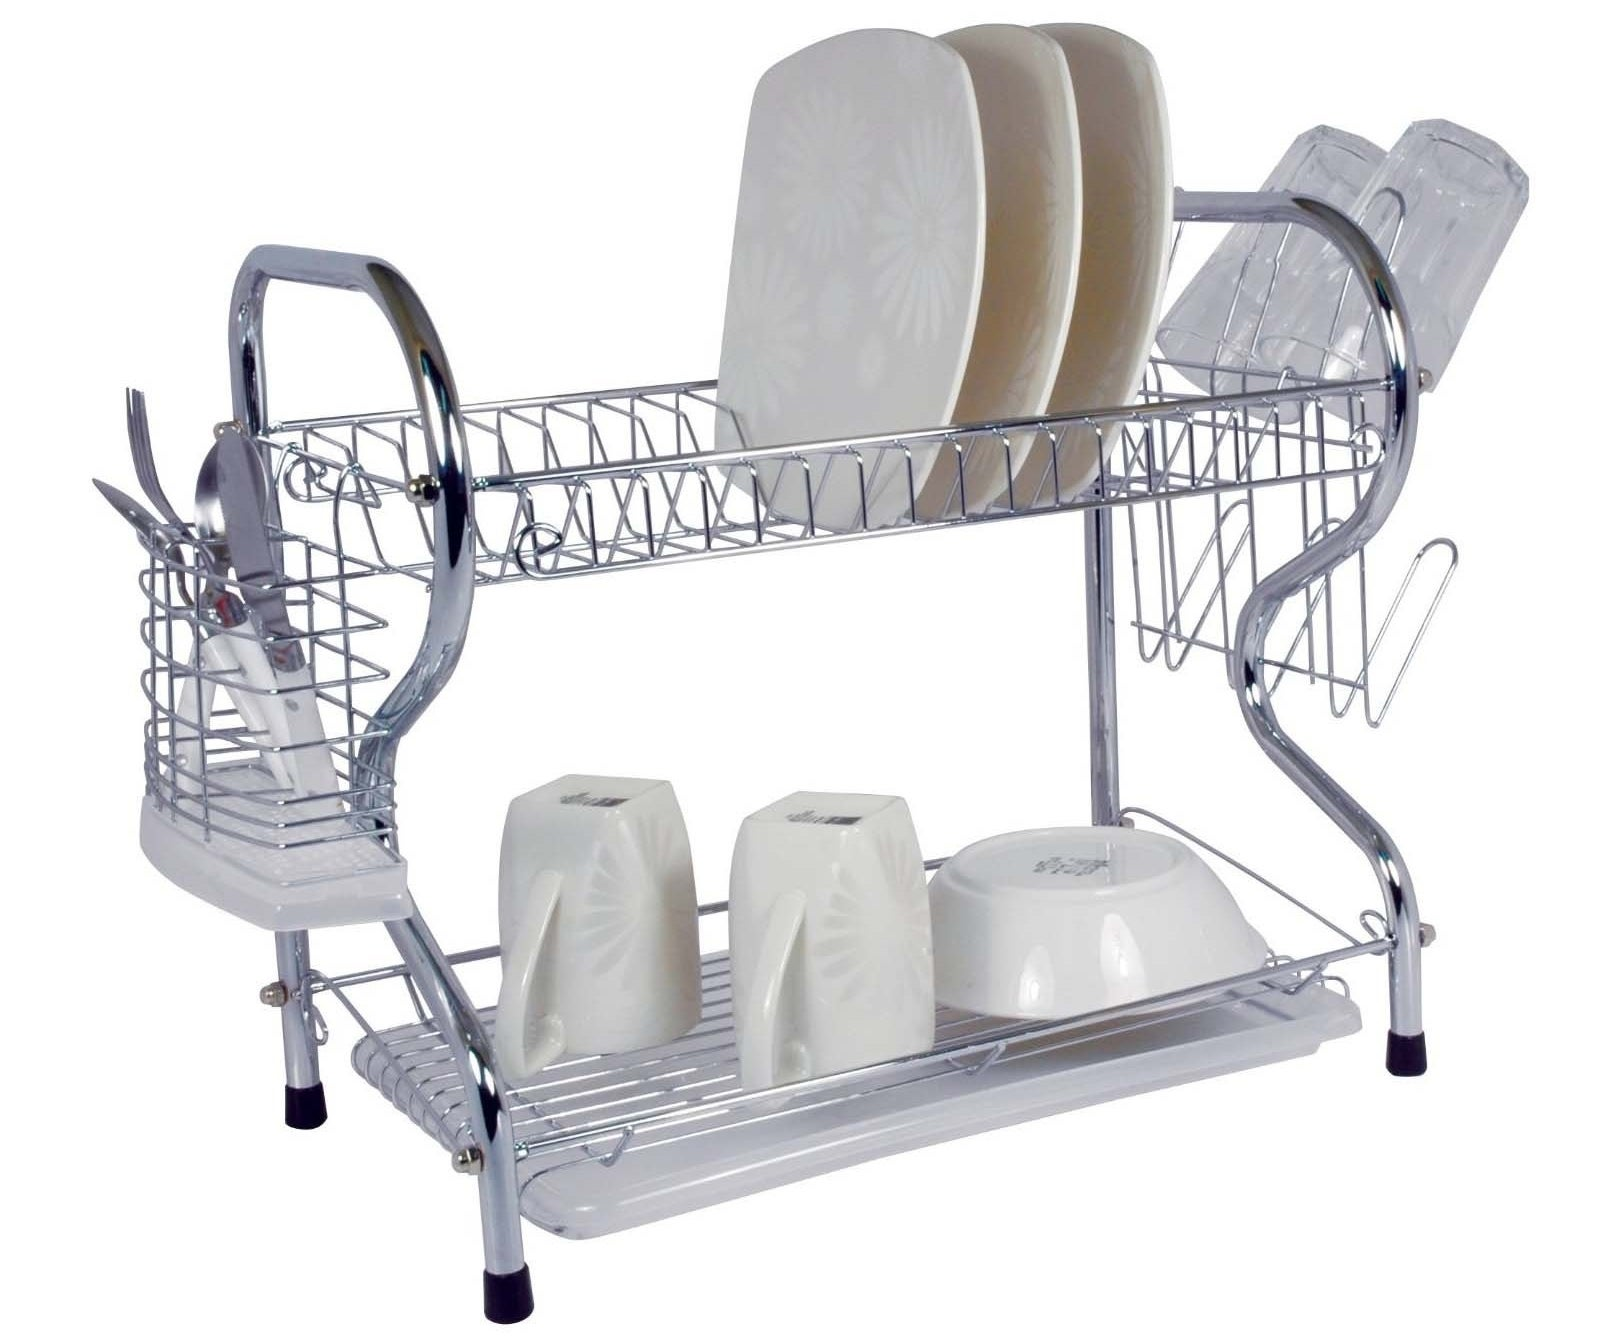 A 22-inch dish rack that can literally hold all of the things.